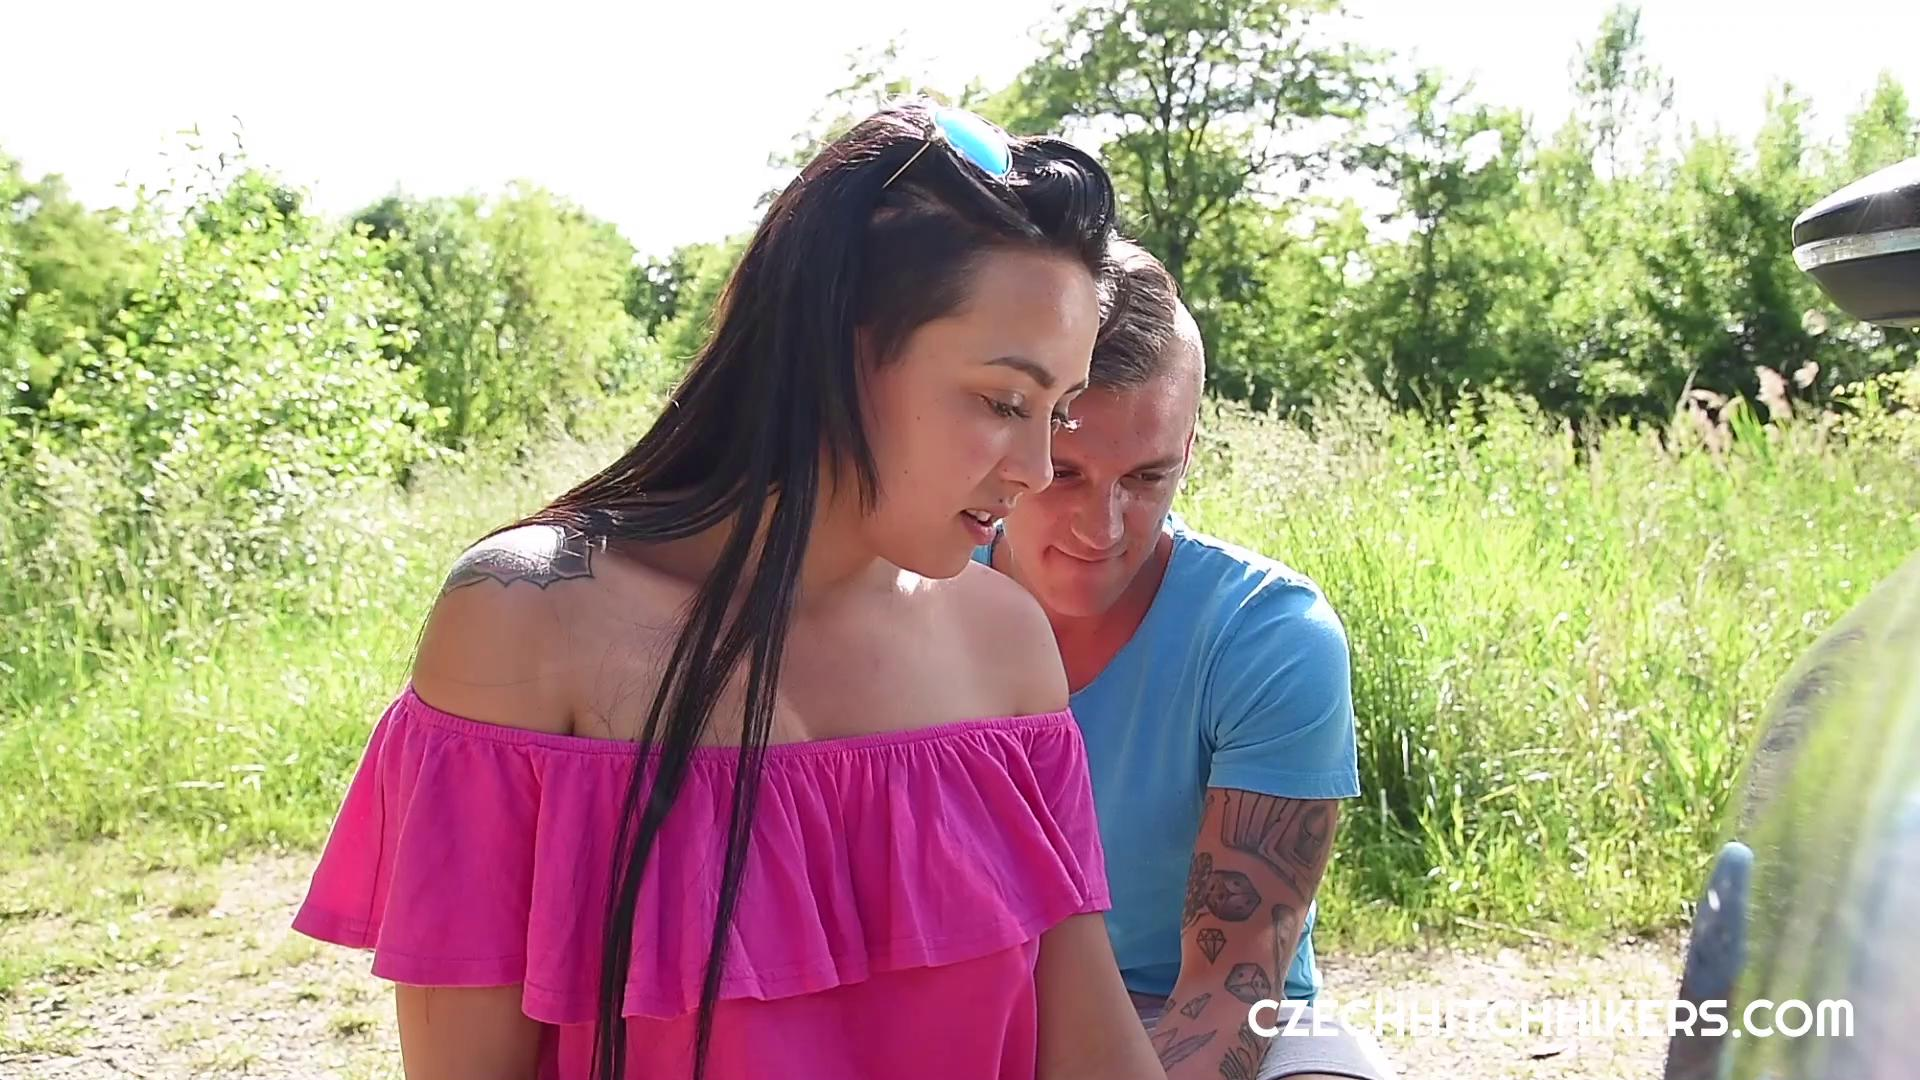 CzechHitchHickers – Innocent Student